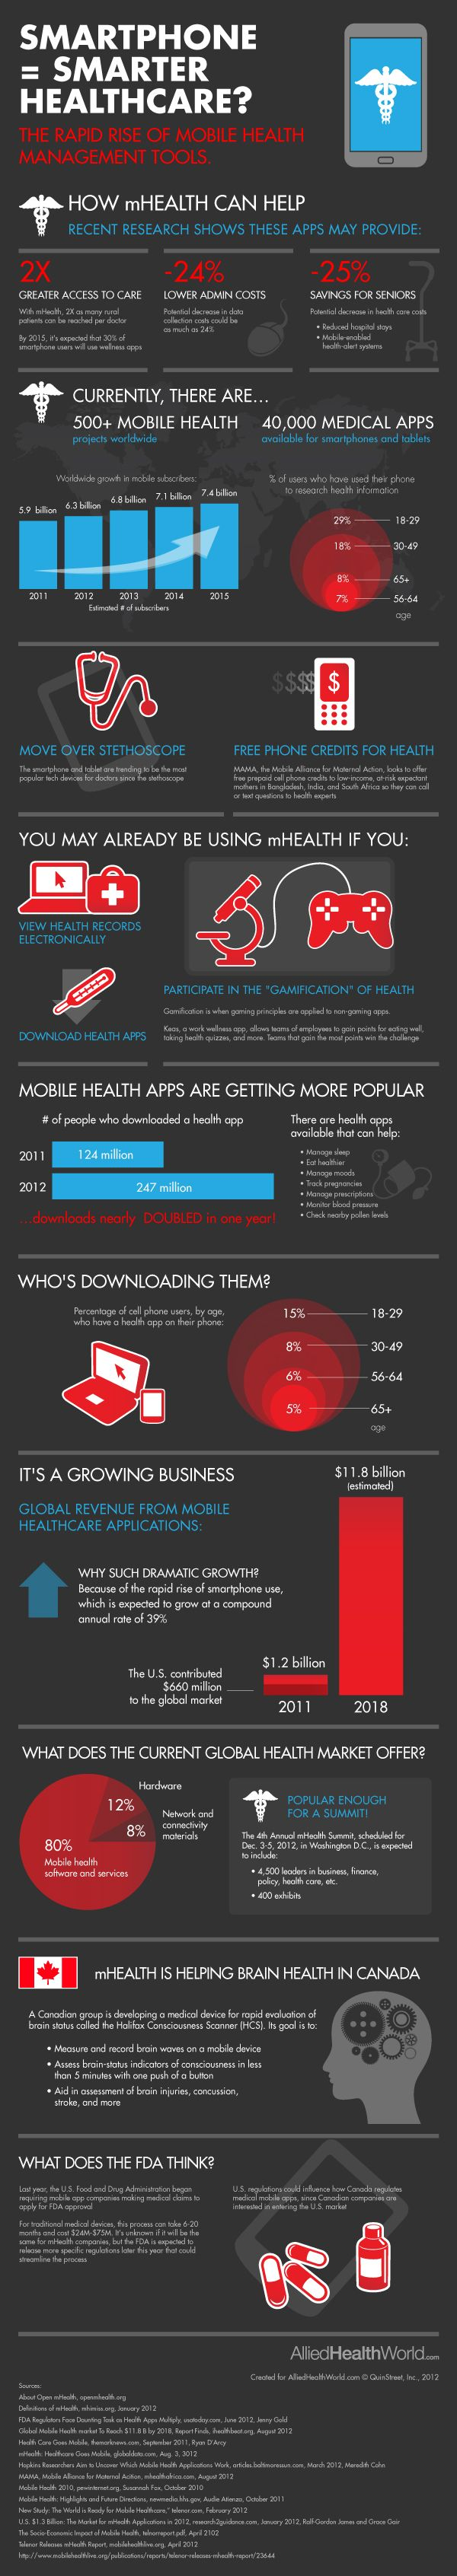 Infographic: Why #mhealth is changing #healthcare #HCSM